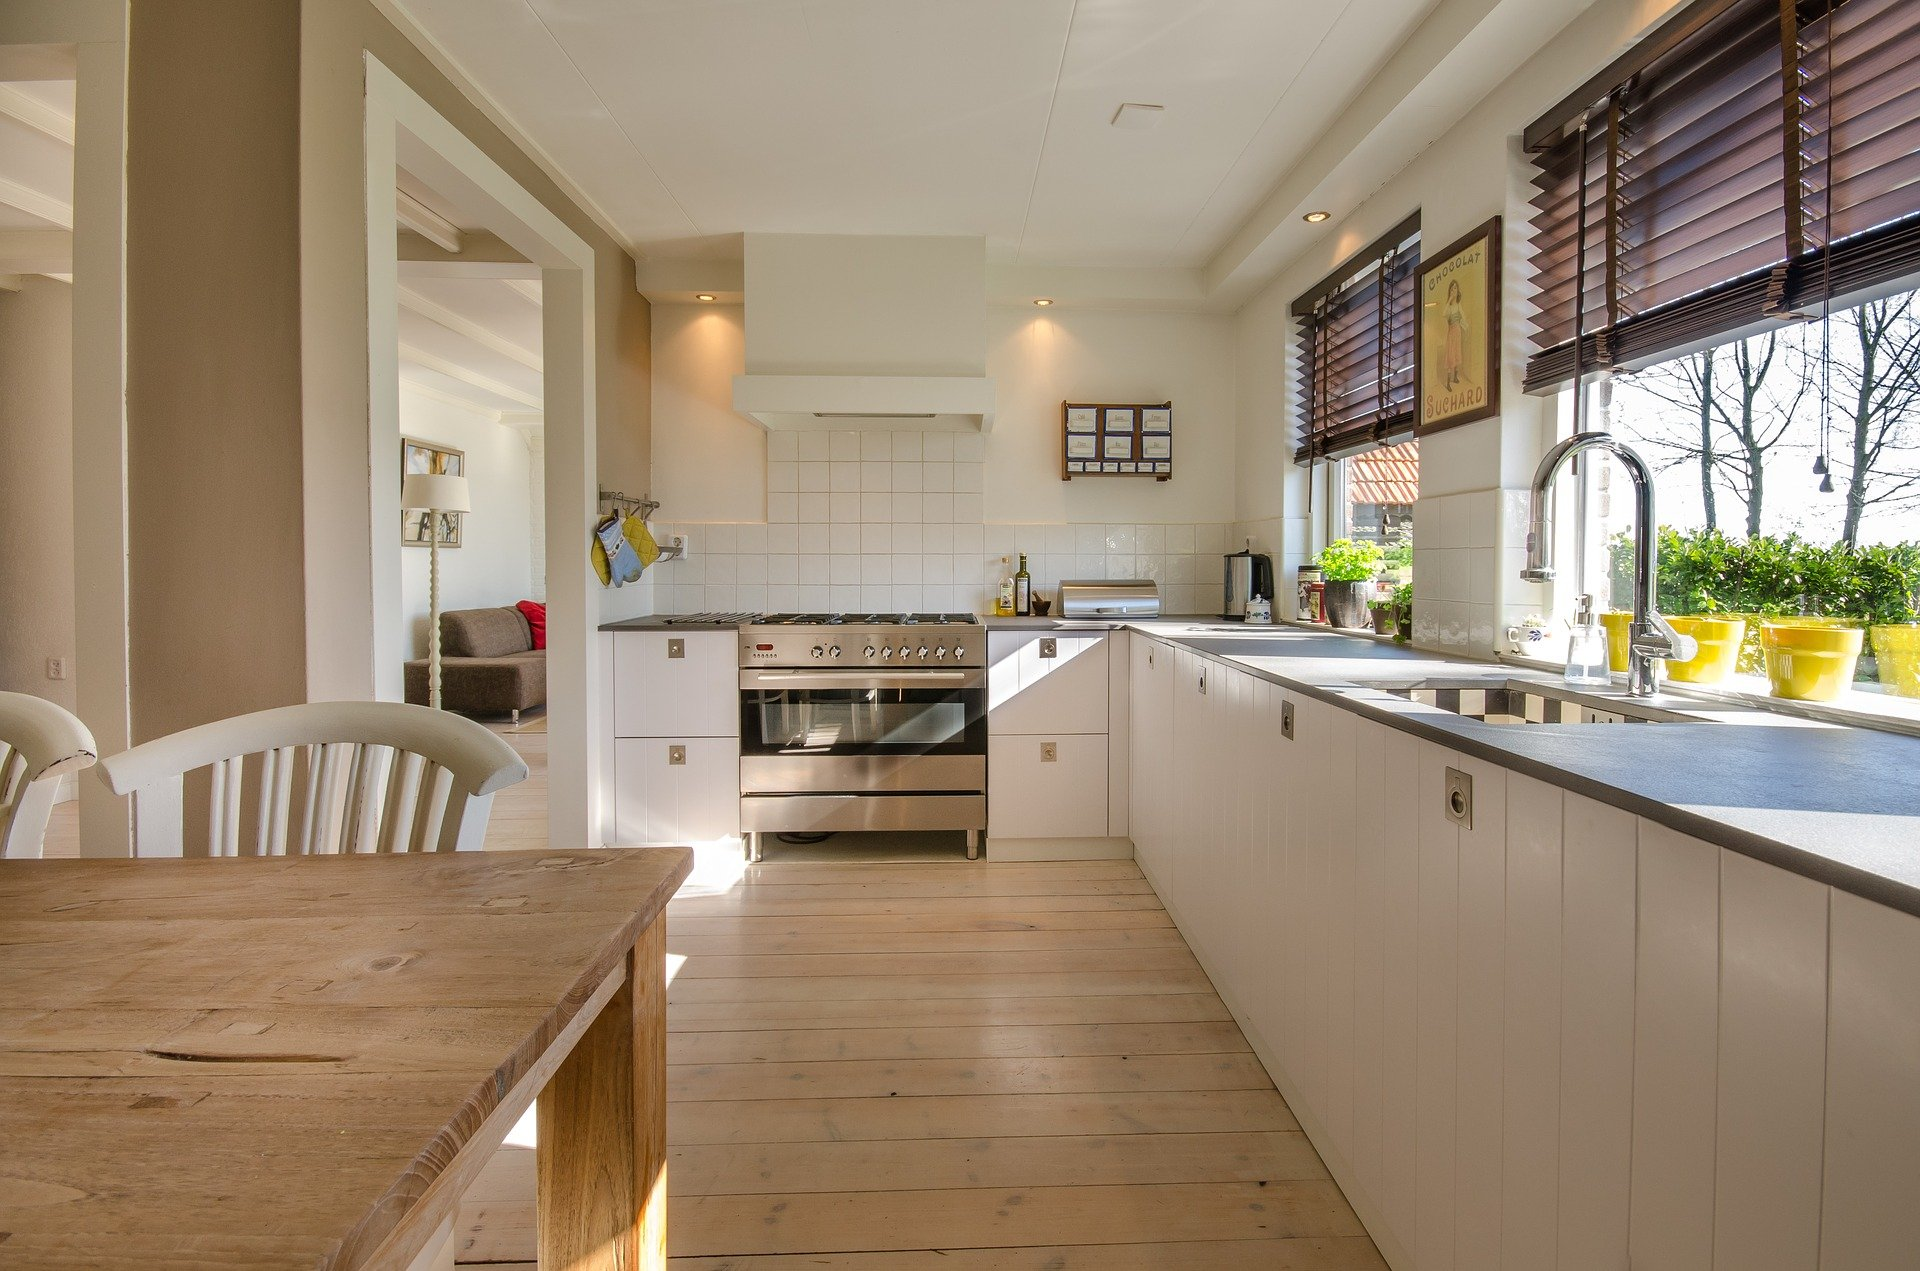 Vacation rental kitchen cleanliness